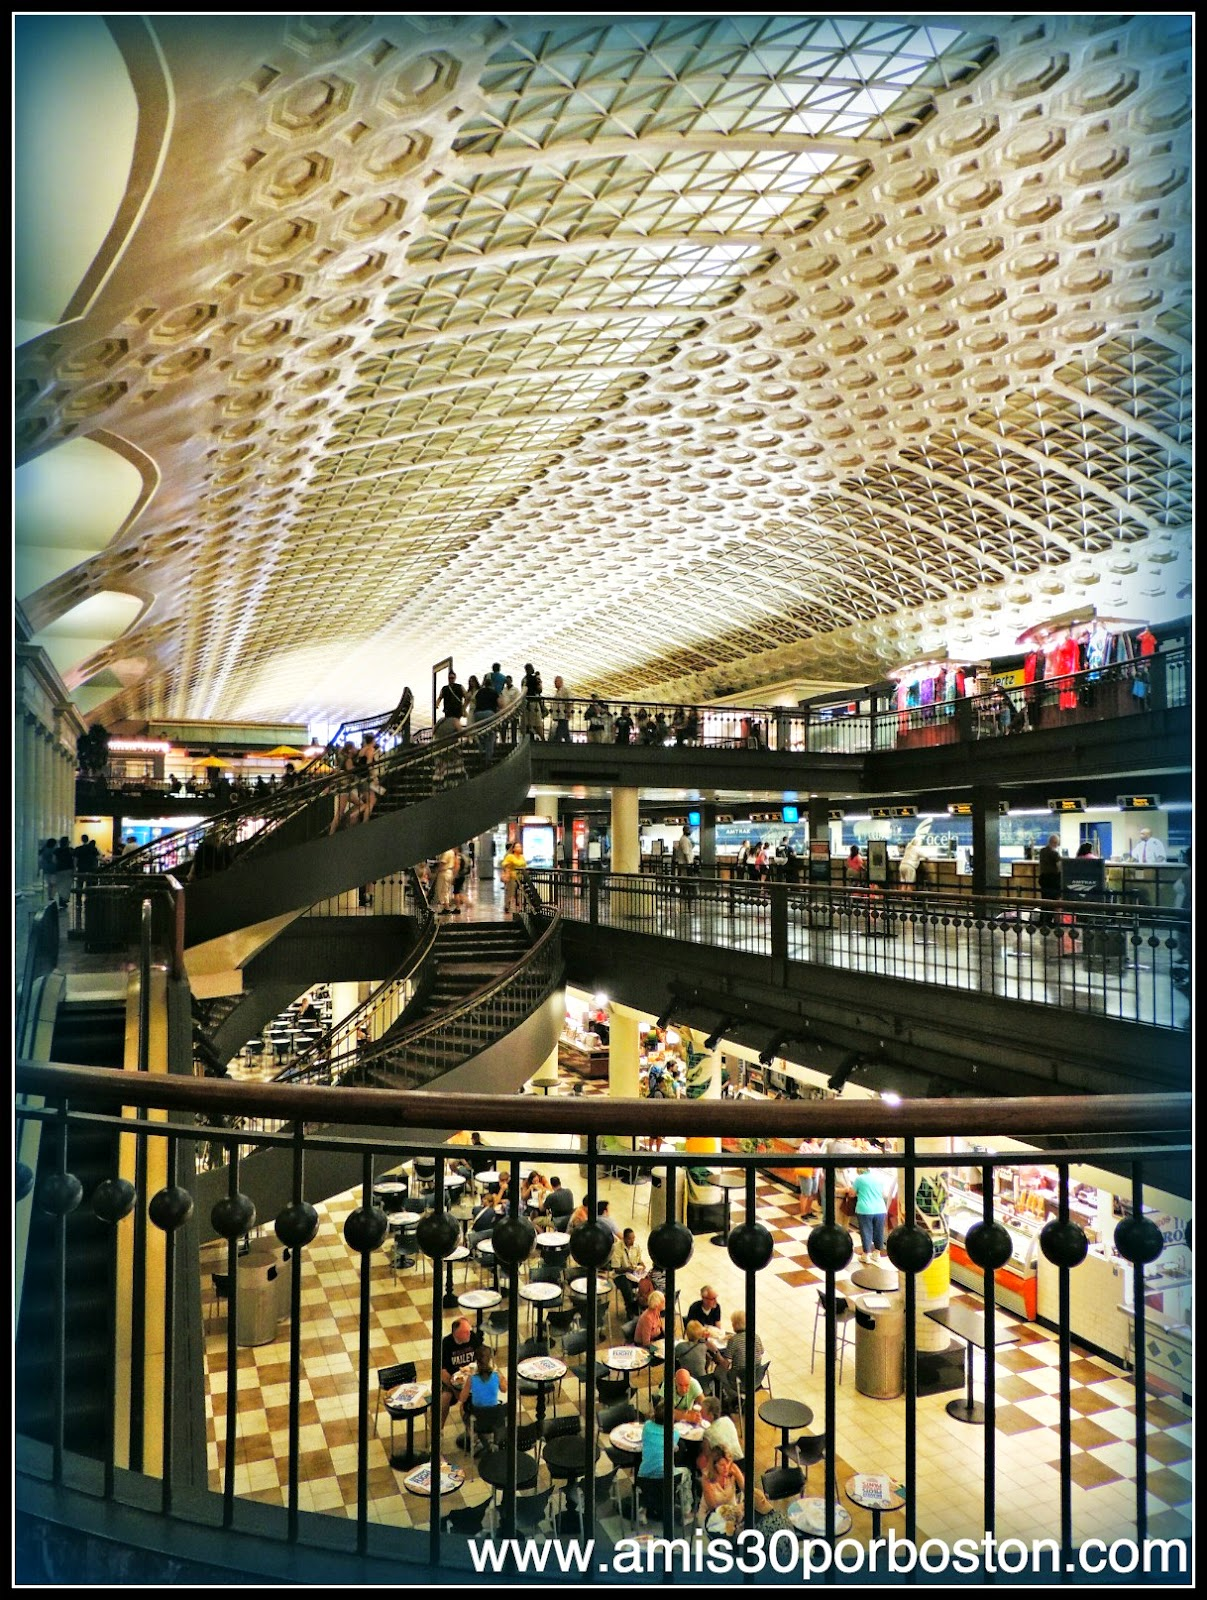 Union Station en Washington D.C.